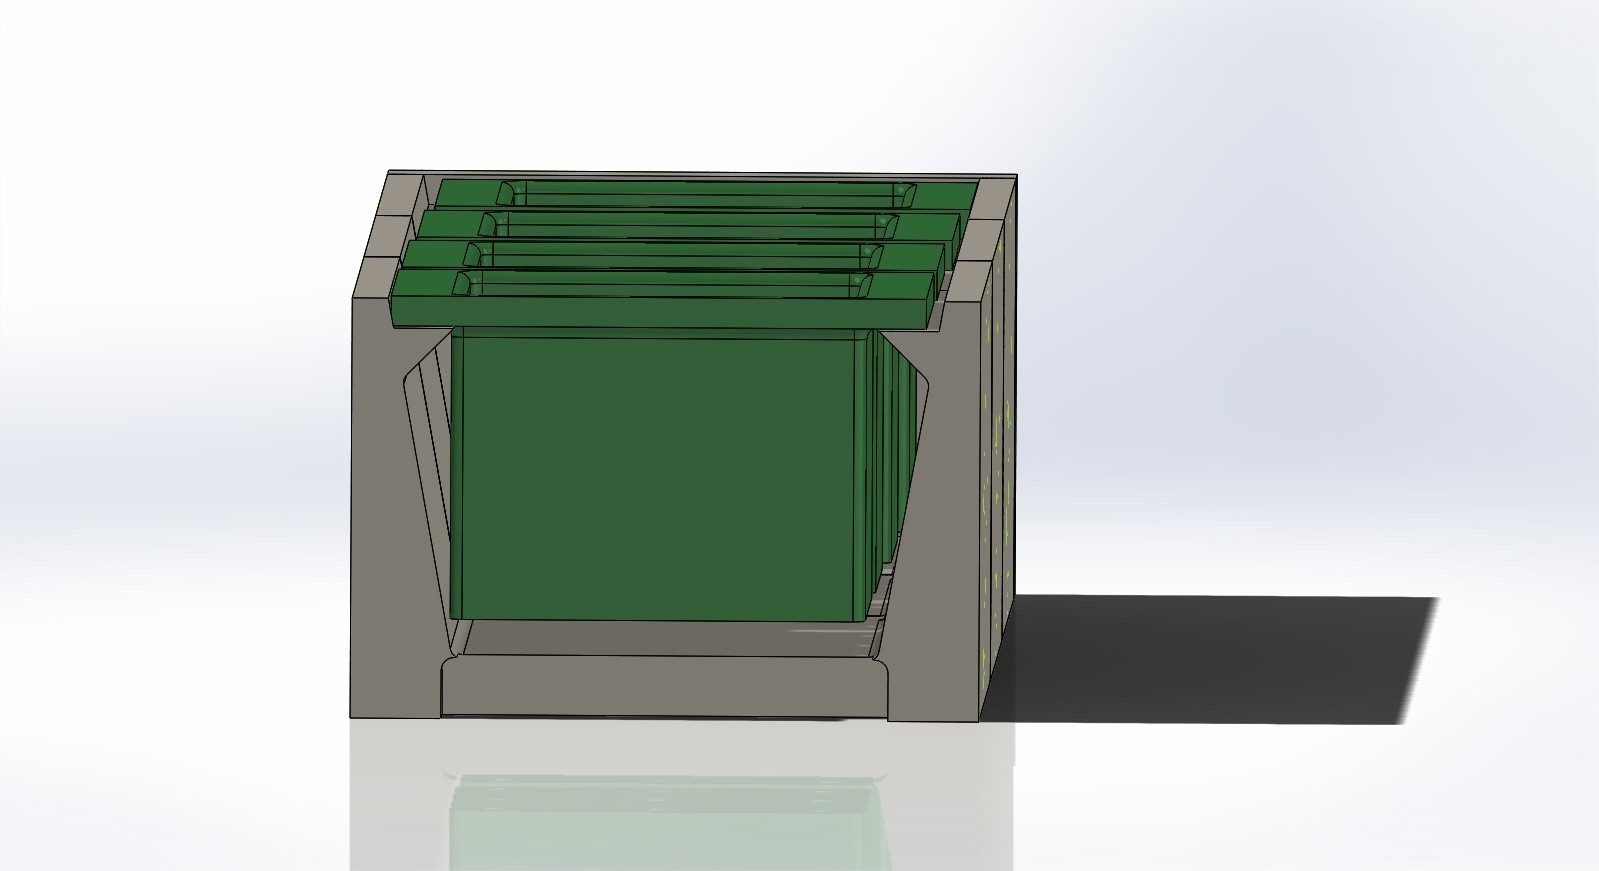 modular plant pot holder recycling assembly 4.JPG Download free STL file Modular Plant Holding System with Water recycling • 3D print model, AAMS